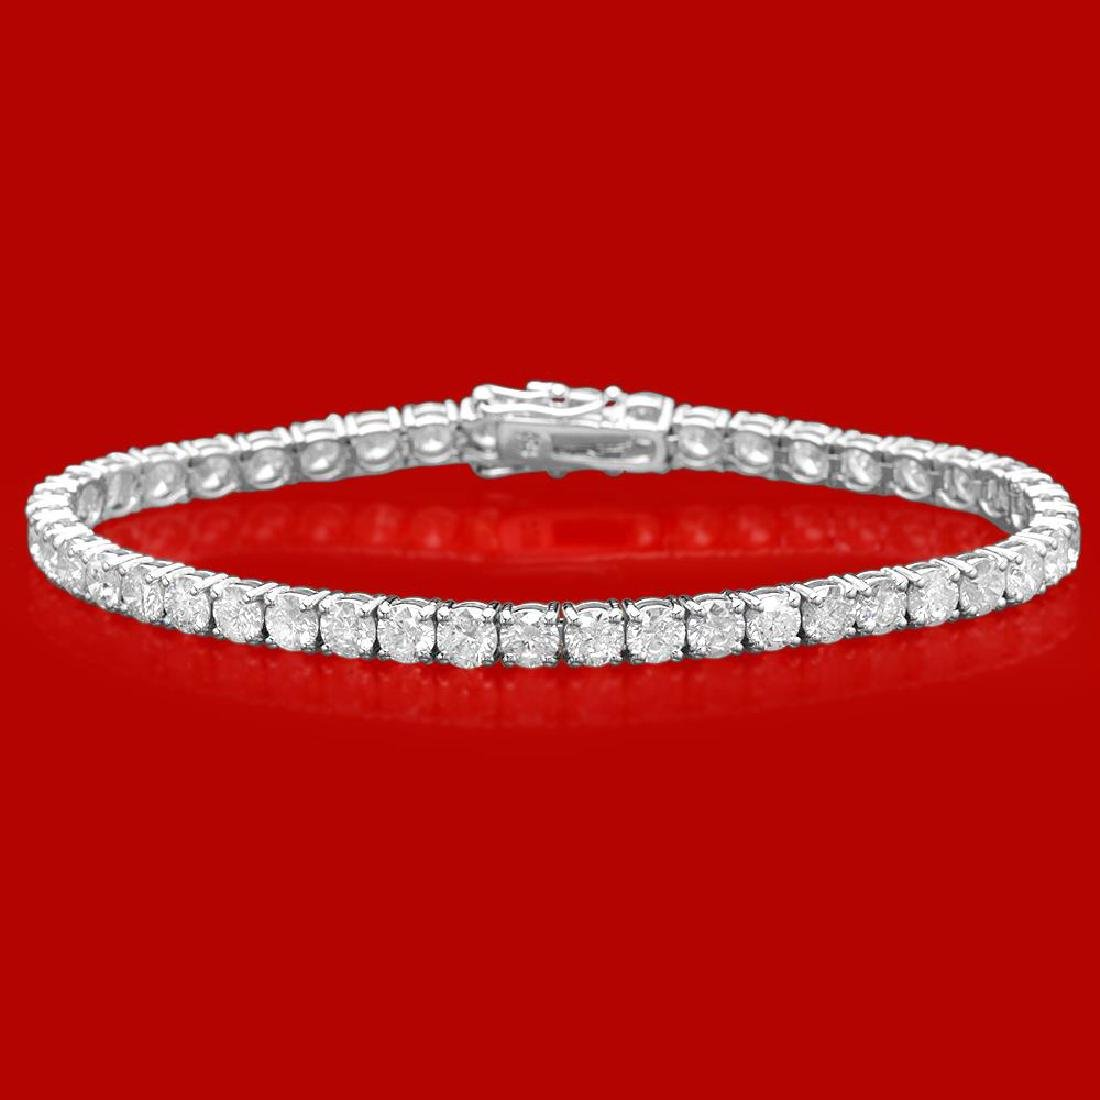 18k Gold 11.28ct Diamond Bracelet